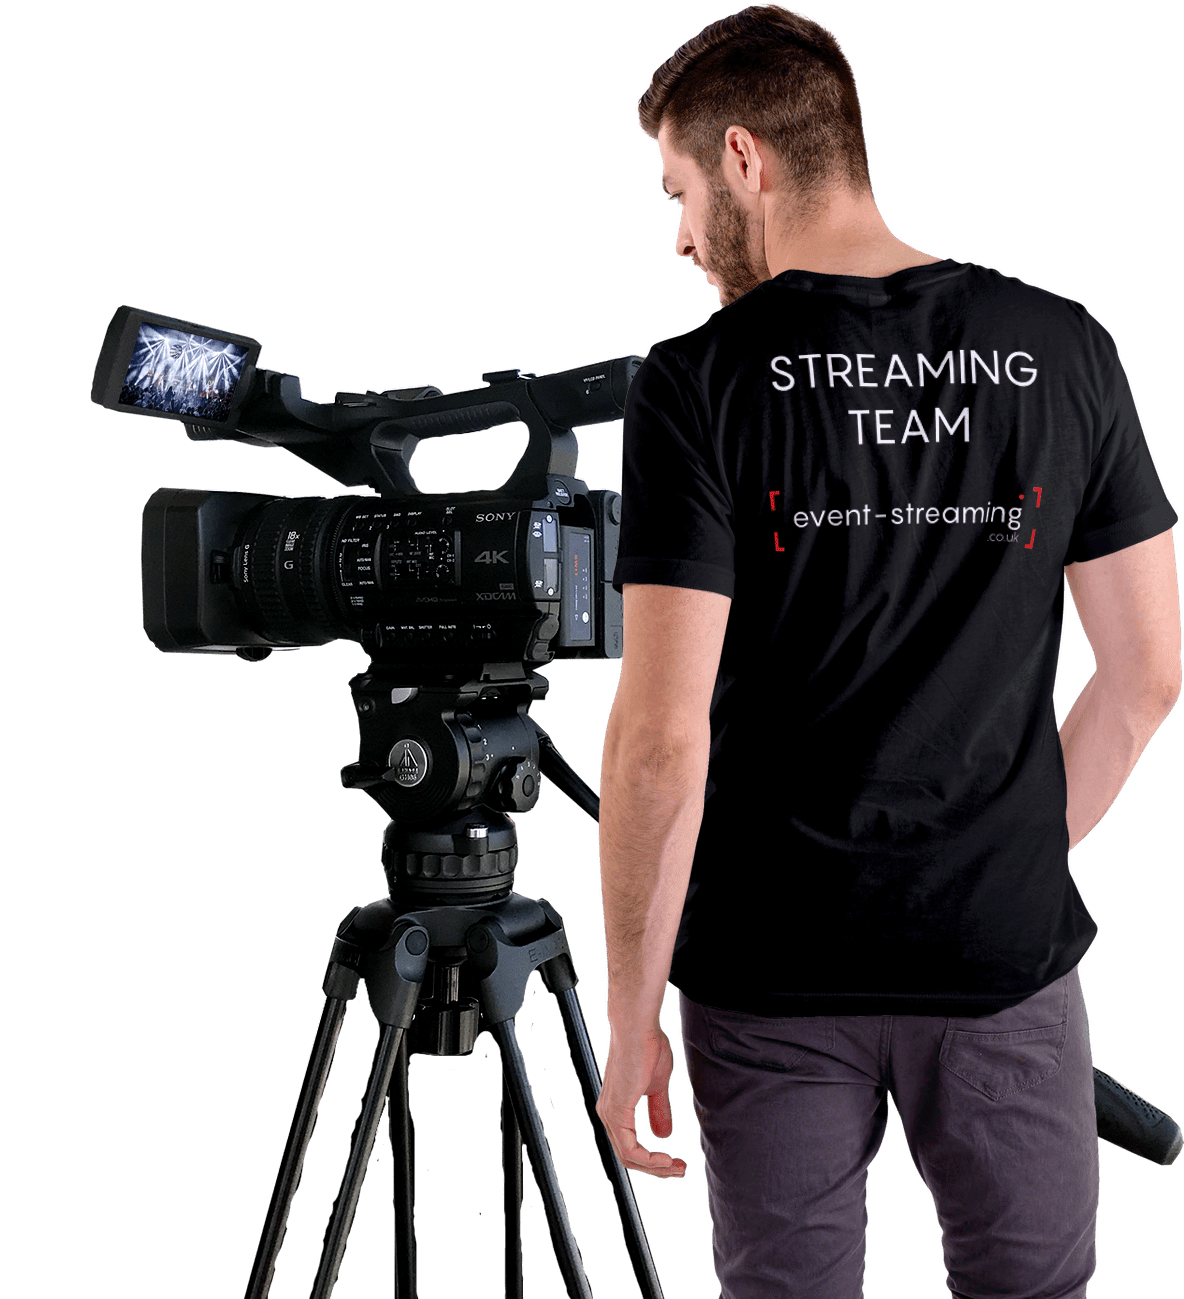 Our Streaming Team